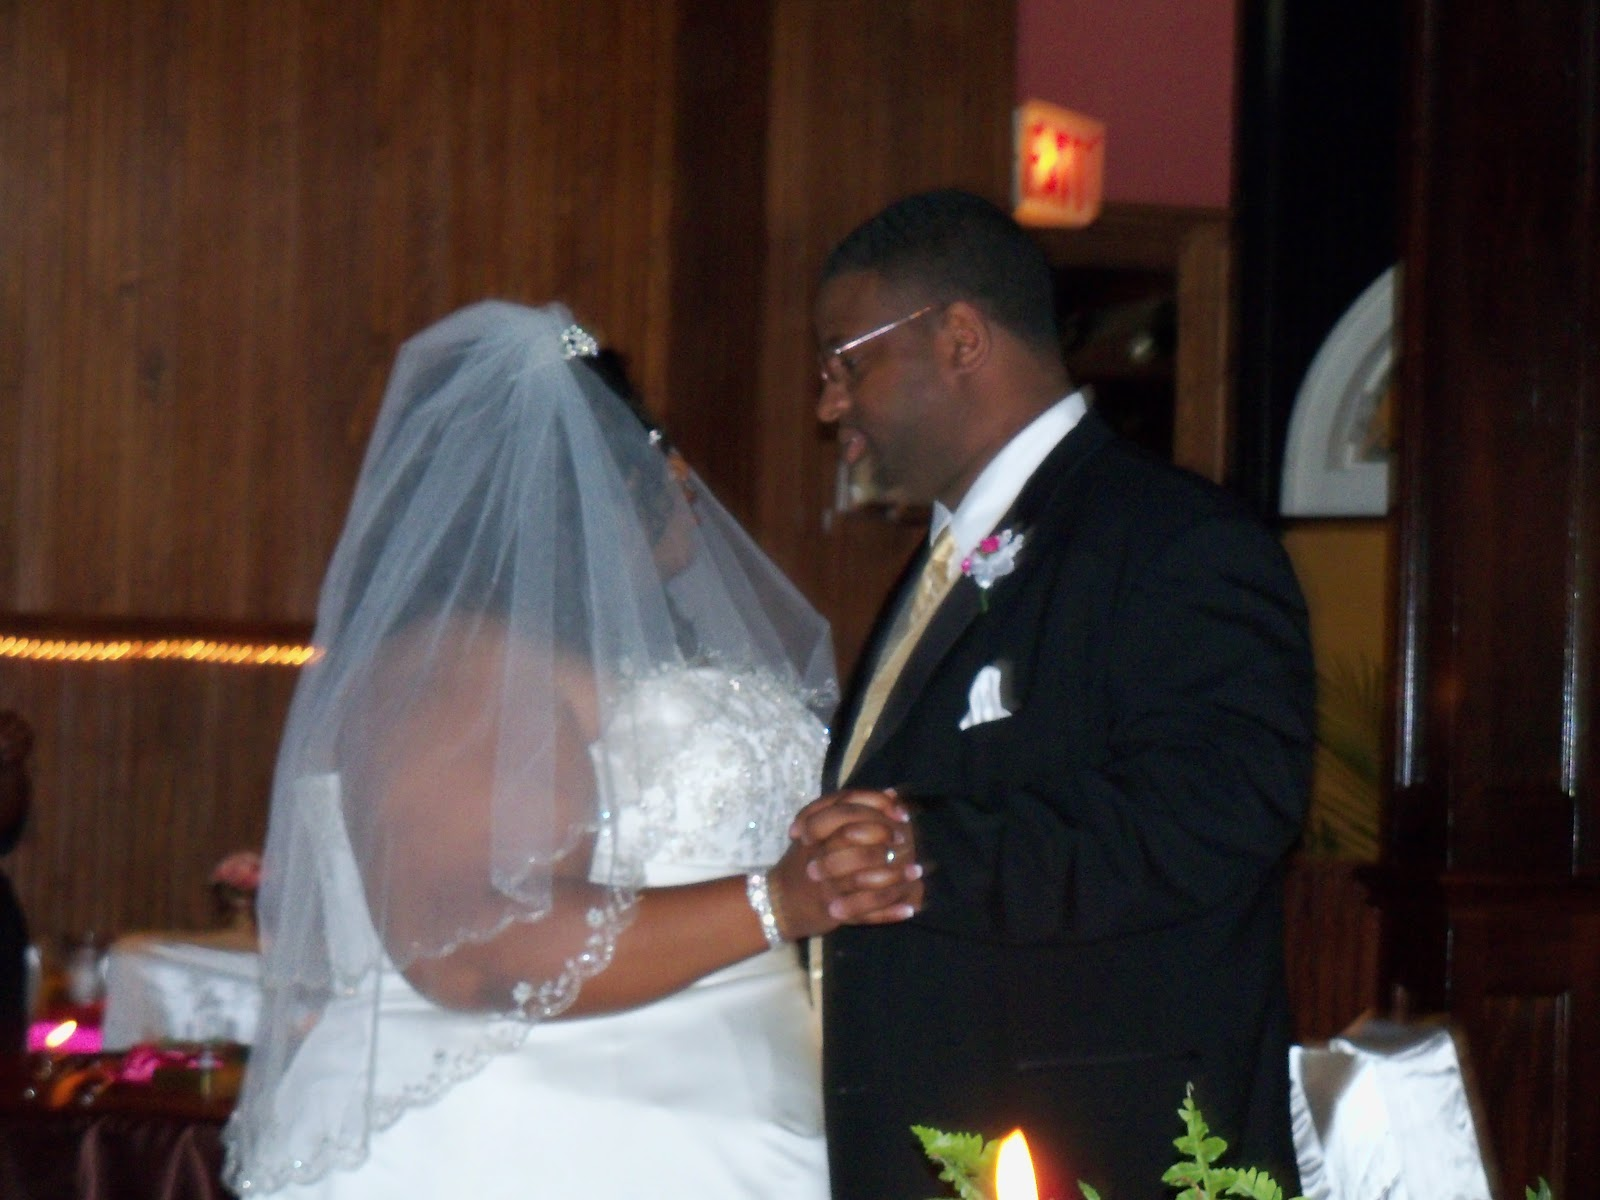 MeChaia Lunn and Clyde Longs wedding - 101_4606.JPG